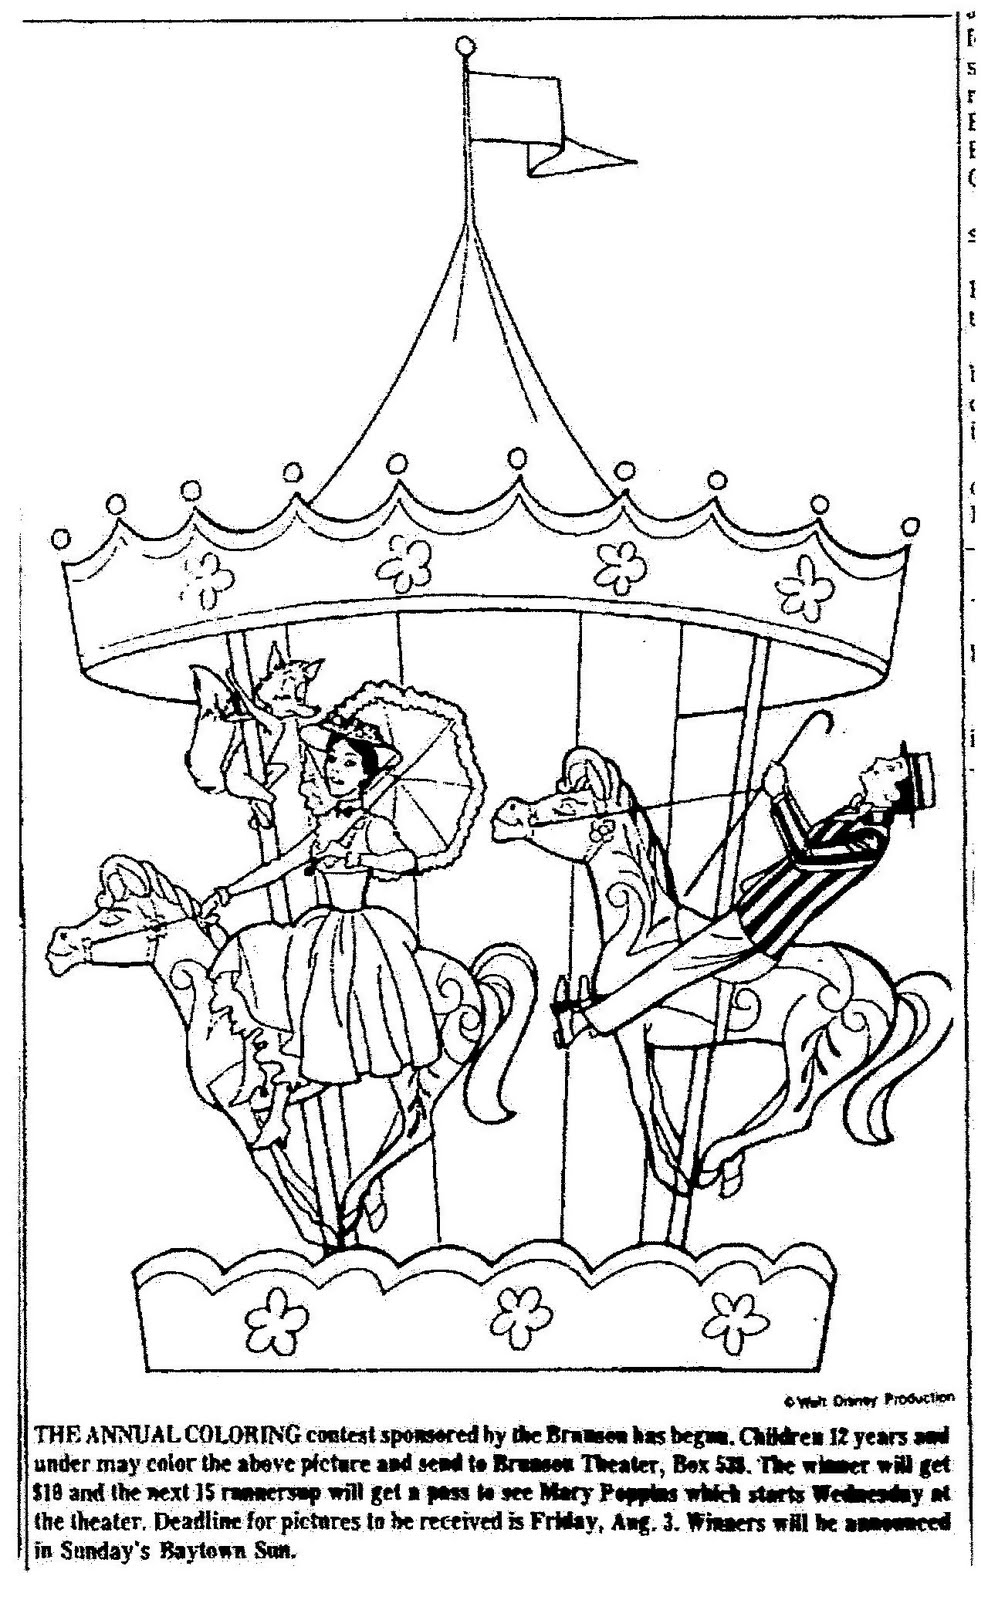 mary coloring pages - mary poppins coloring page